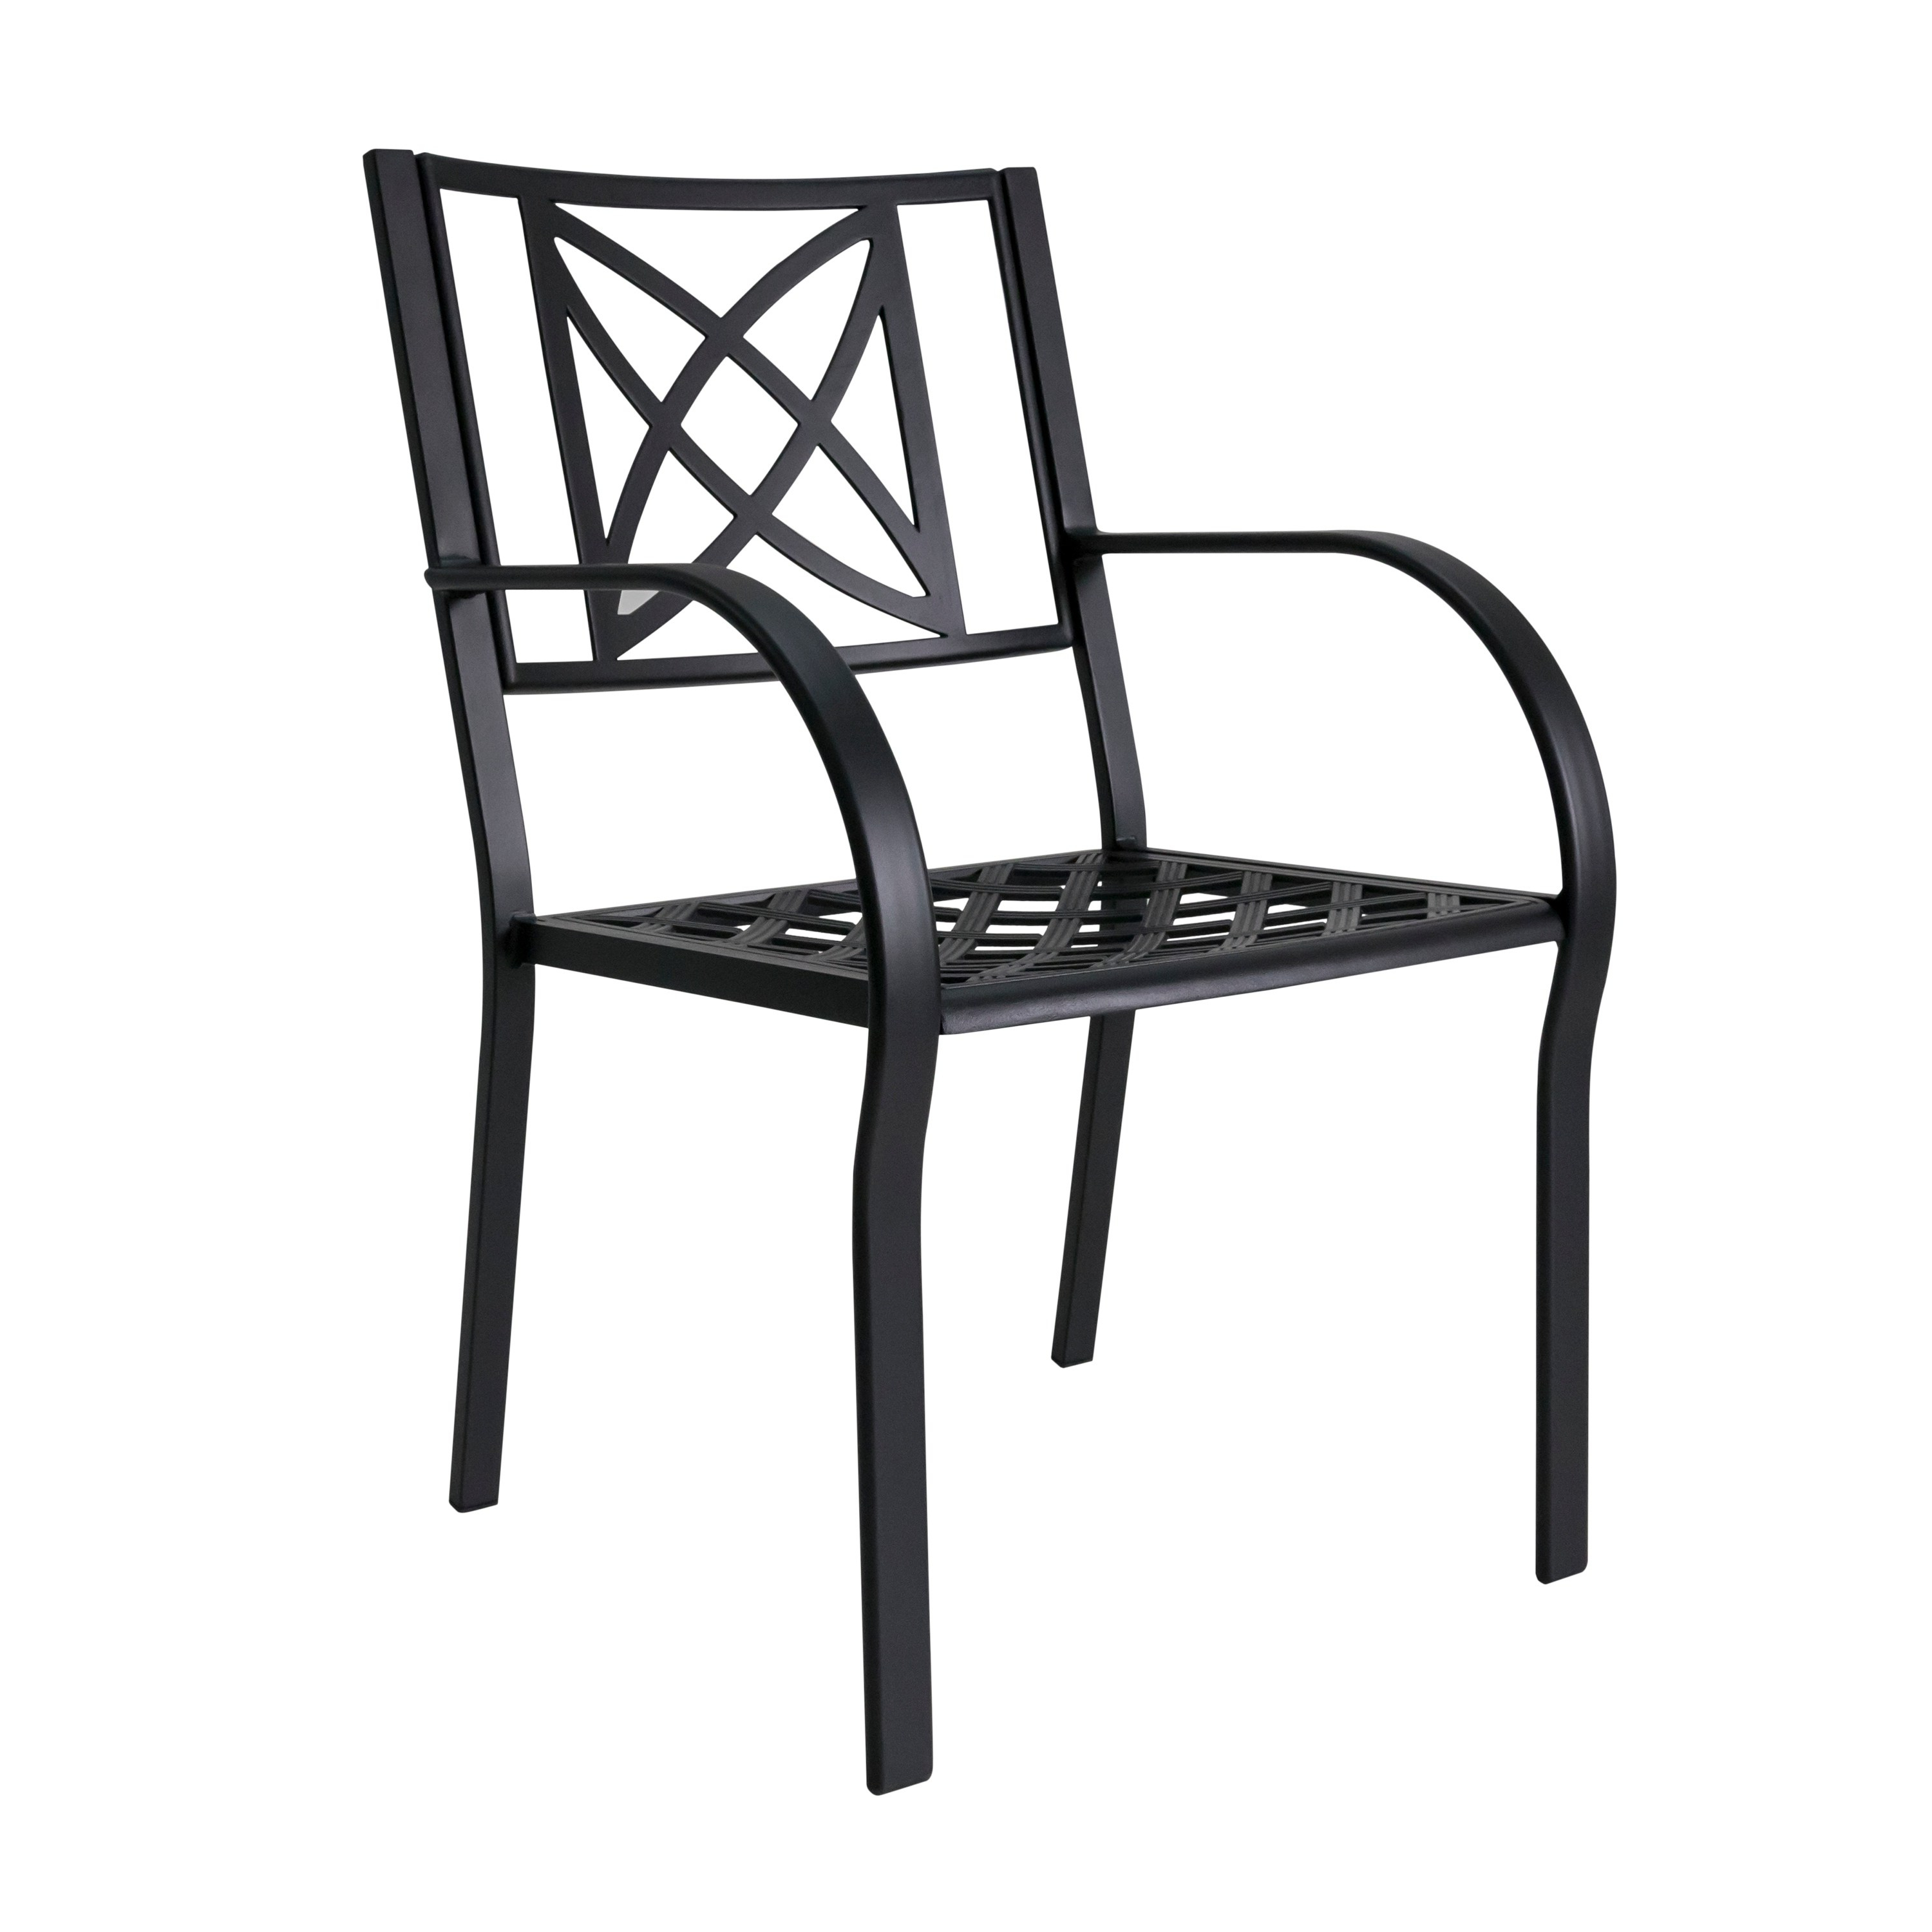 Havenside Home Surfside Outdoor Lounge Chairs Regarding Fashionable Havenside Home Surfside Outdoor Patio Aluminum Chairs (Set (View 24 of 25)